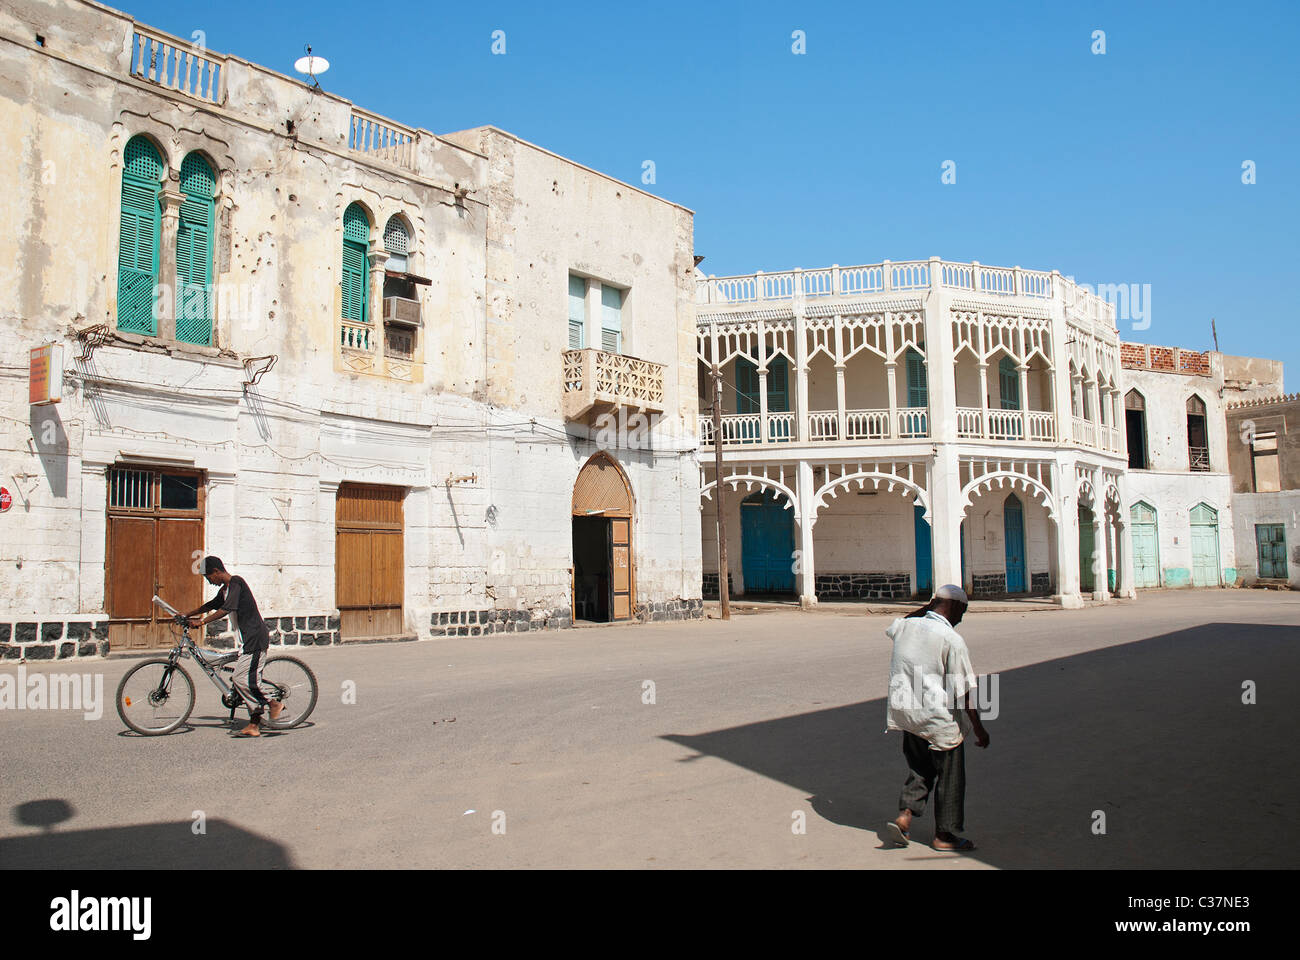 street scene in central massawa eritrea - Stock Image